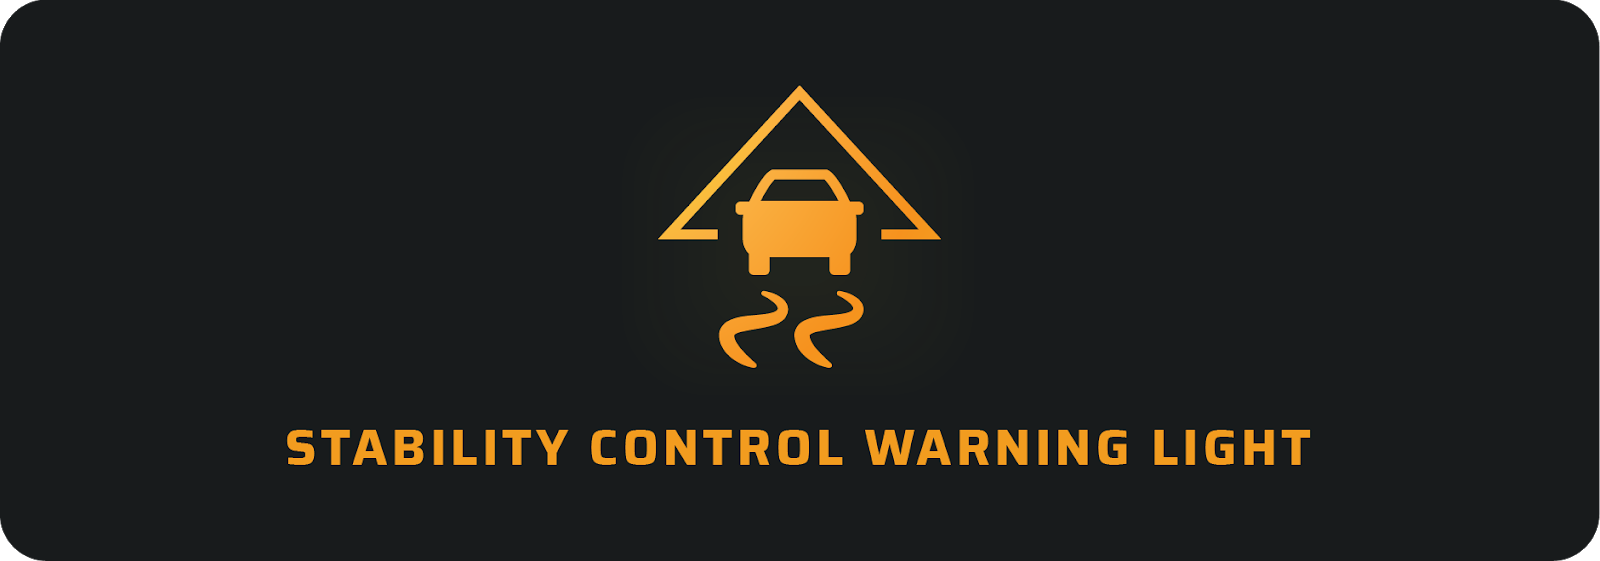 Stability control warning light